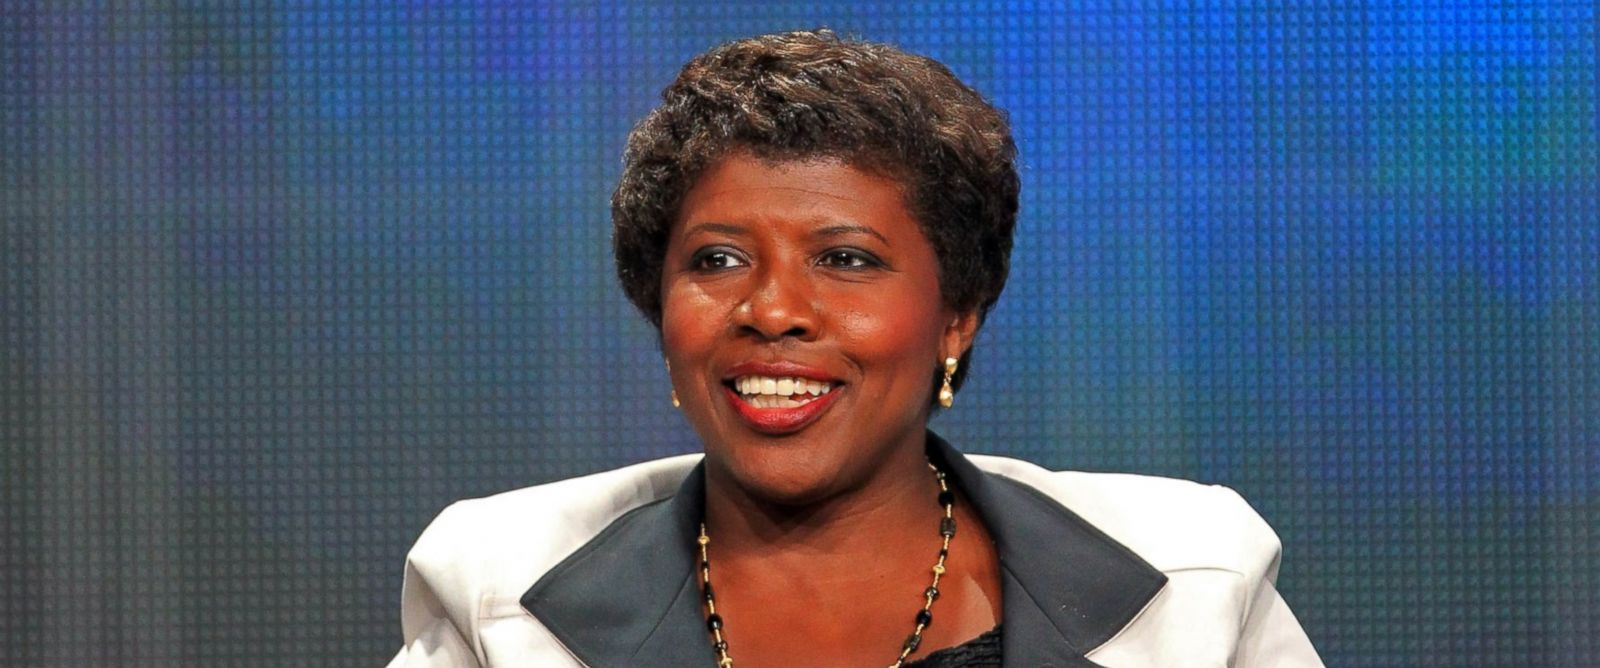 PHOTO: PBS news anchor Gwen Ifill speaks during the 2012 Summer TCA Tour held at the Beverly Hilton Hotel on July 22, 2012 in Los Angeles